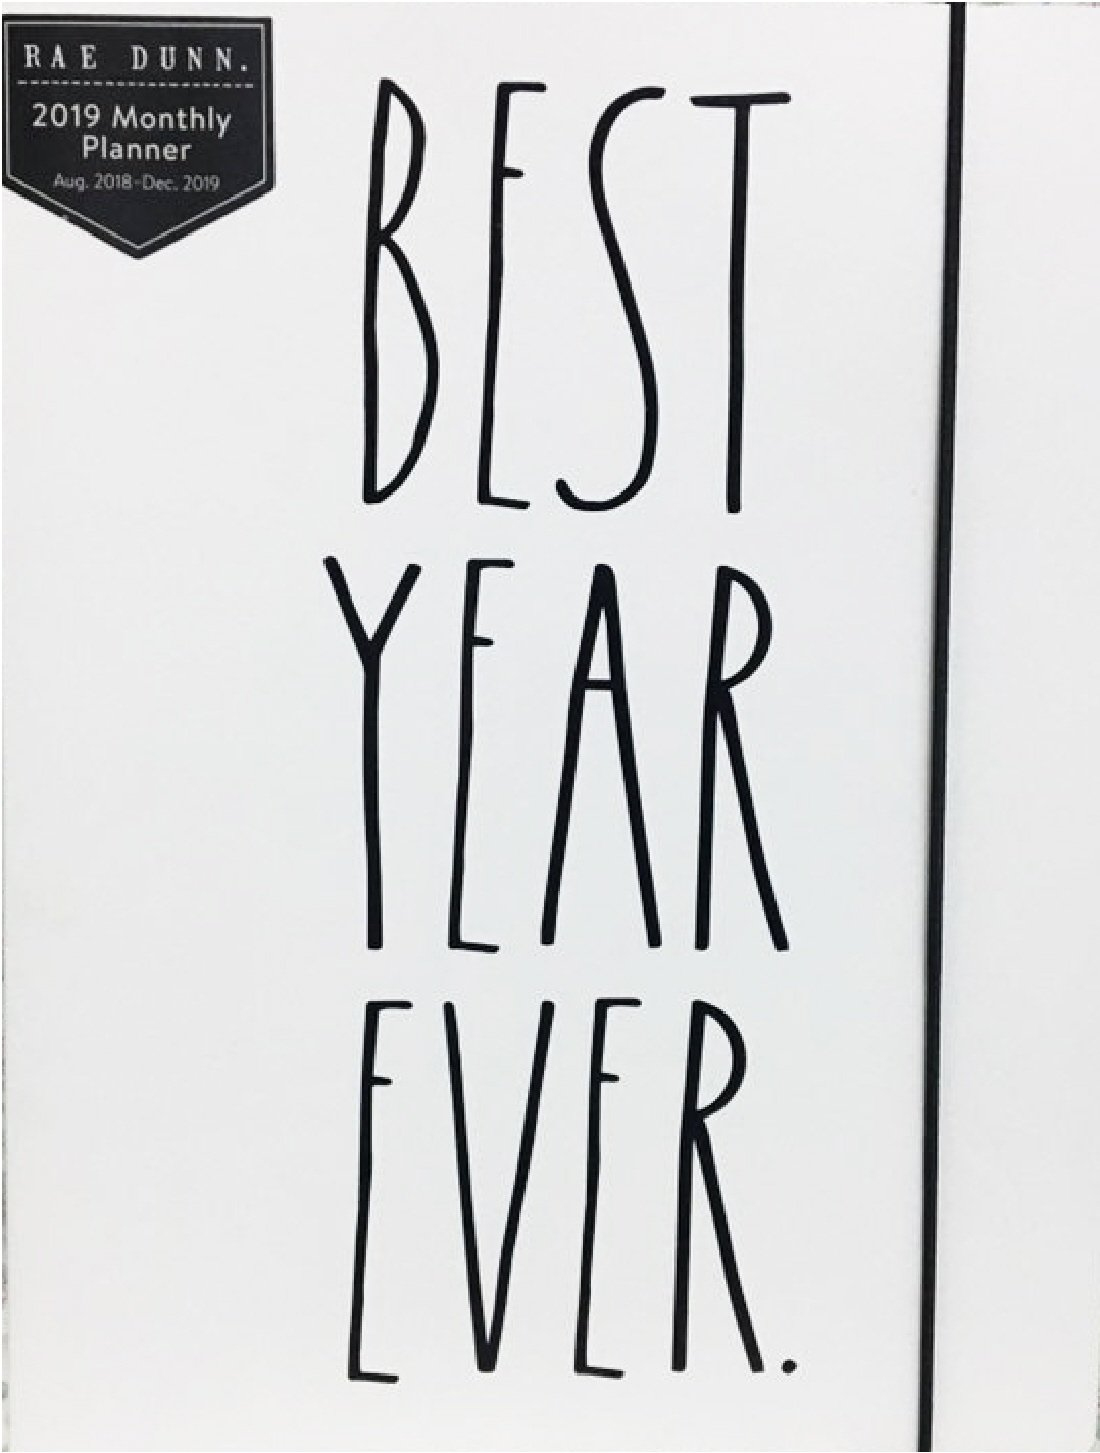 Rae Dunn - Best Year Ever - 2019 Monthly Planner Calendar (17 Months Aug 2018-Dec 2019) to Do/Notes